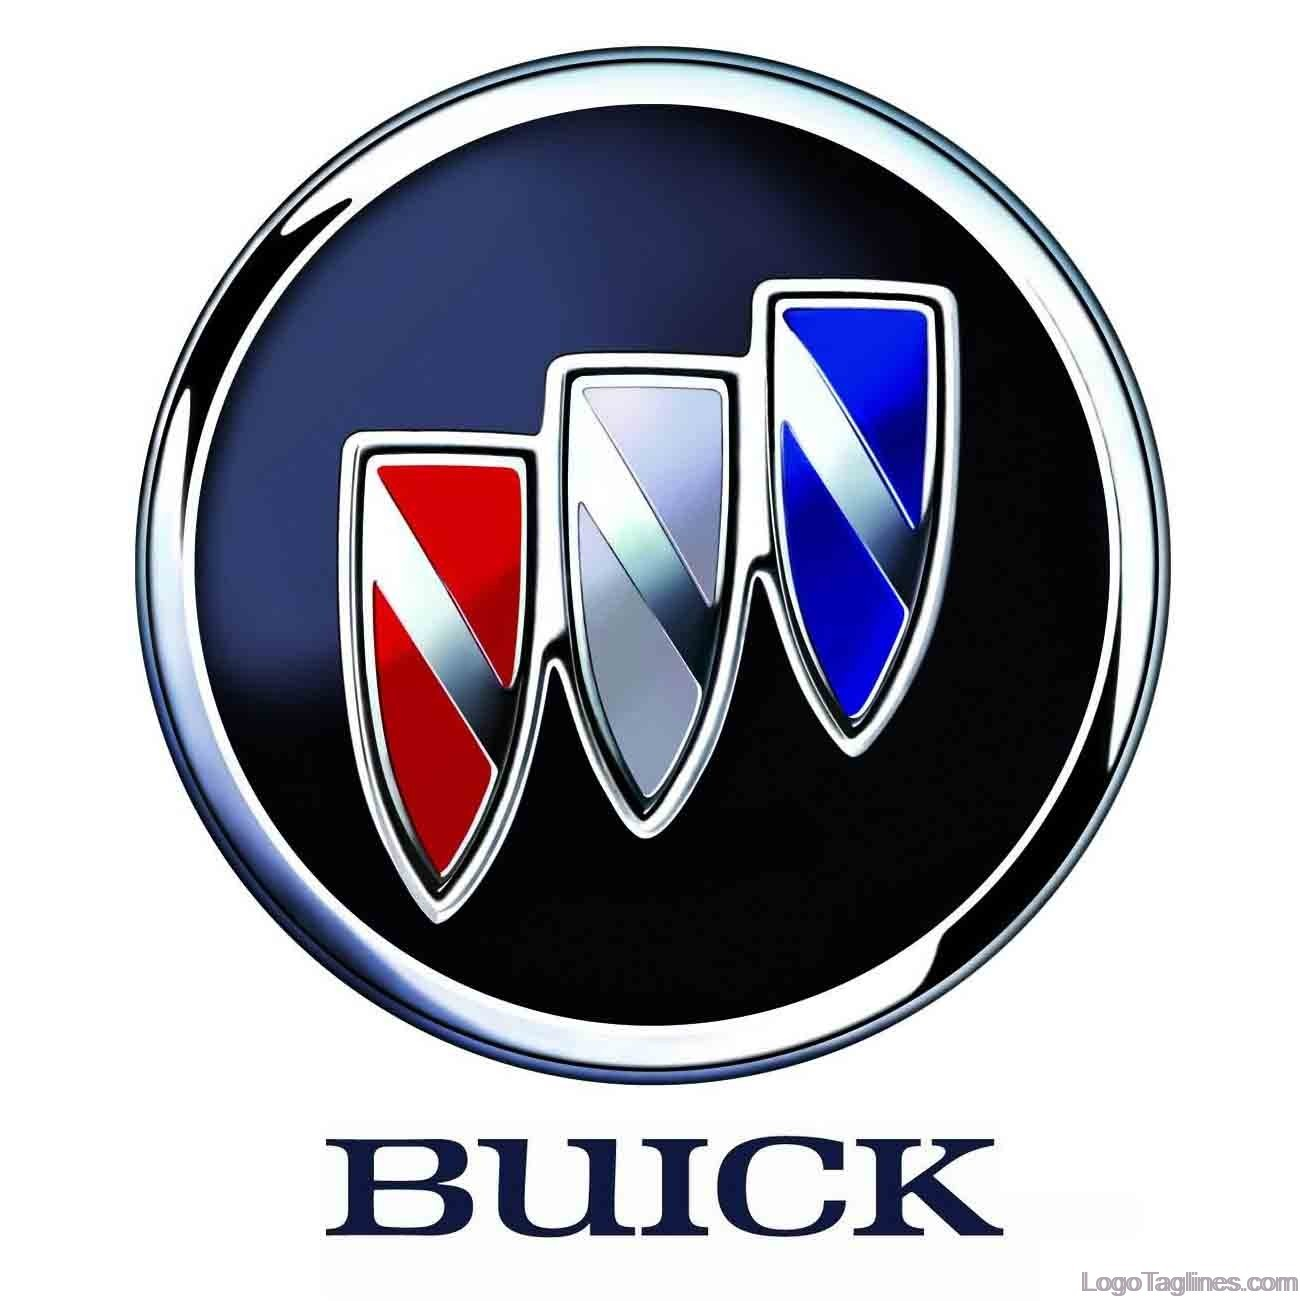 Buick Logo And Tagline